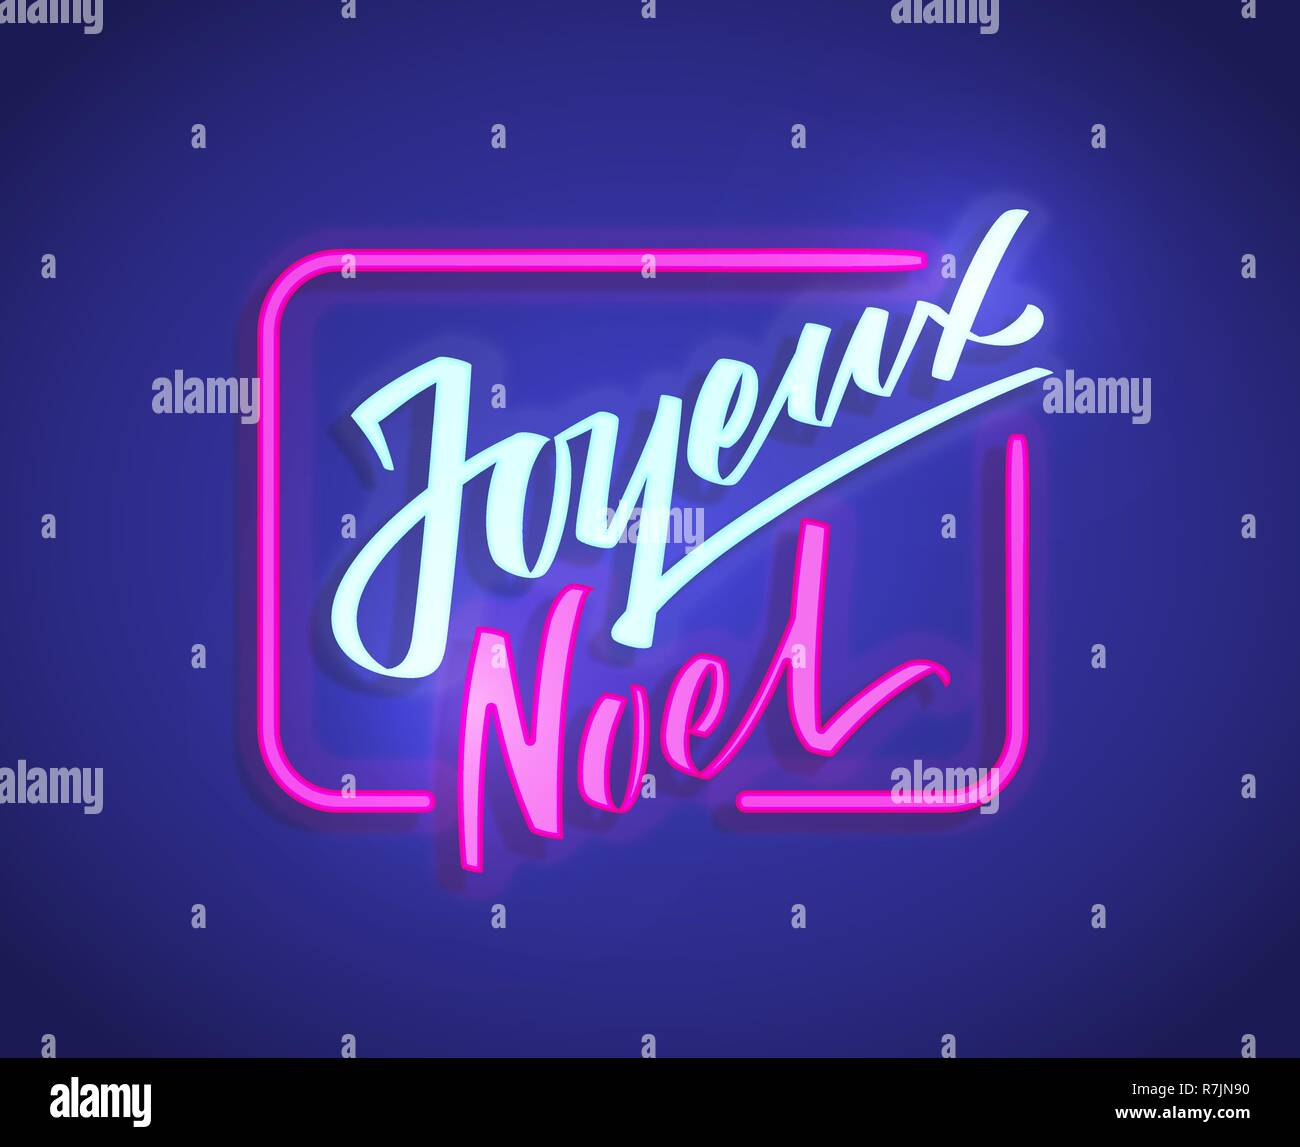 Joyeux Noel - Merry Christmas from french hand-written text, typography, hand lettering, calligraphy. Vector neon glow sign, lightning letters on dark background - Stock Image